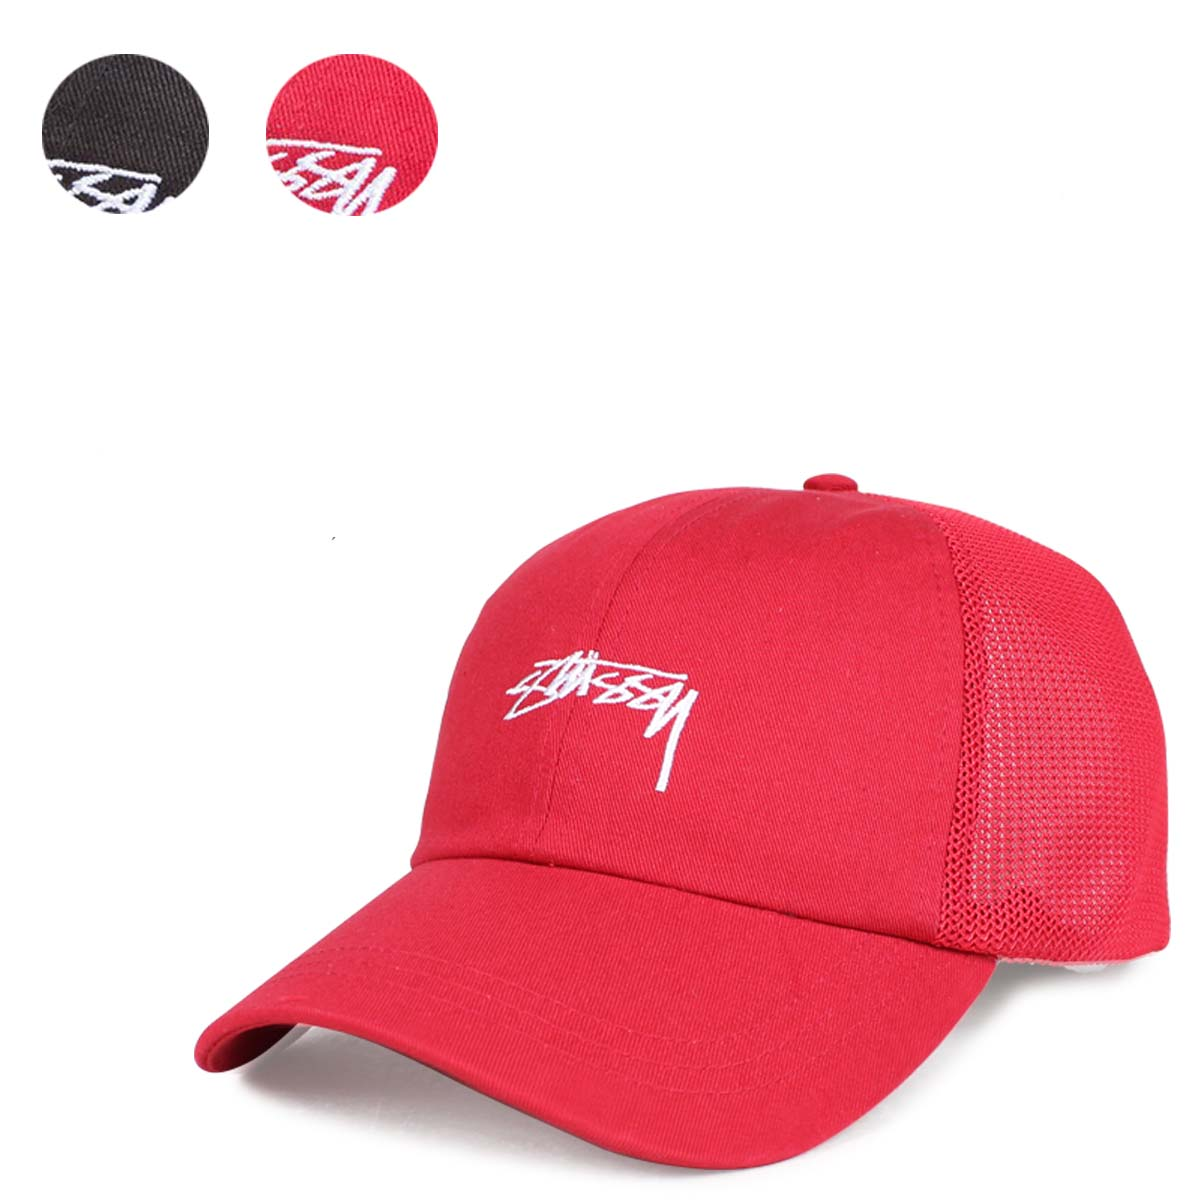 STUSSY STOCK LOW PRO TRUCKER CAP ステューシーキャップ hat men gap Dis snapback 131801   load planned Shinnyu load in reservation product 6 30 containing  ... b5c9197b0c2